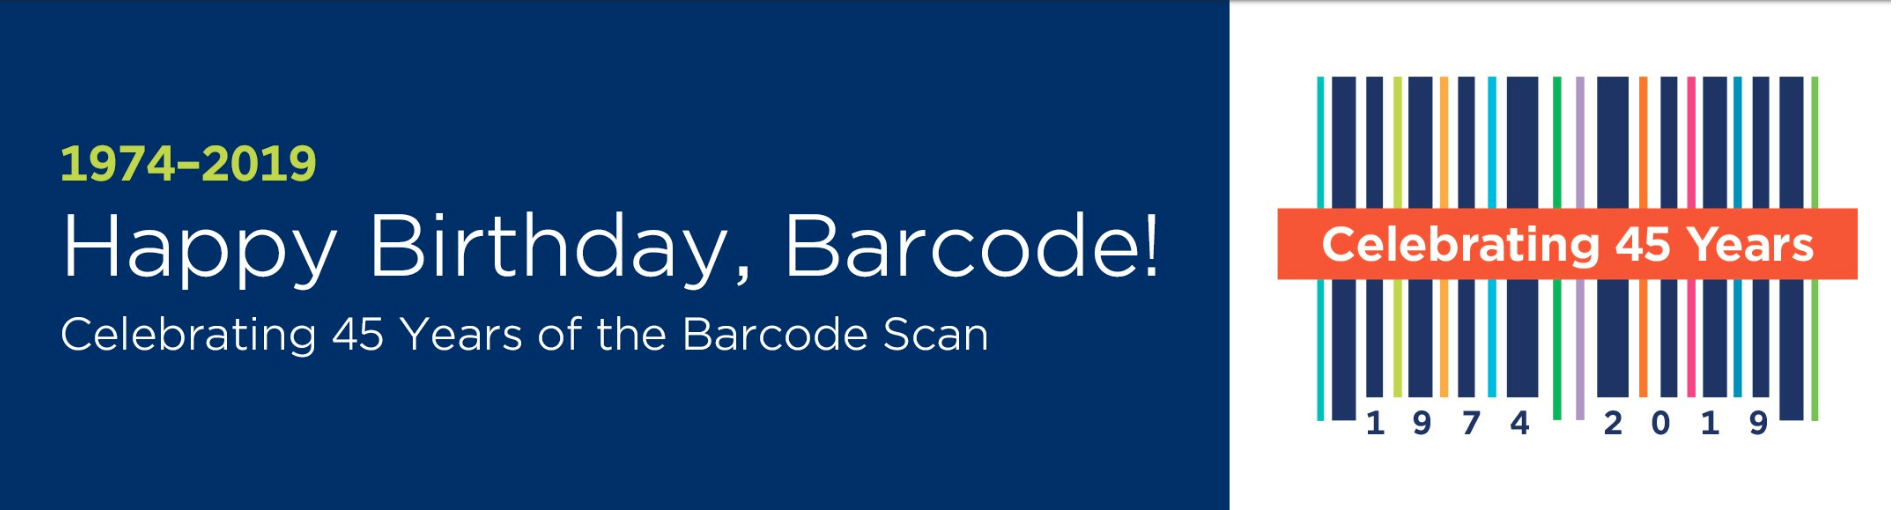 GS1 US Celebrates the 45th Anniversary of the Barcode's